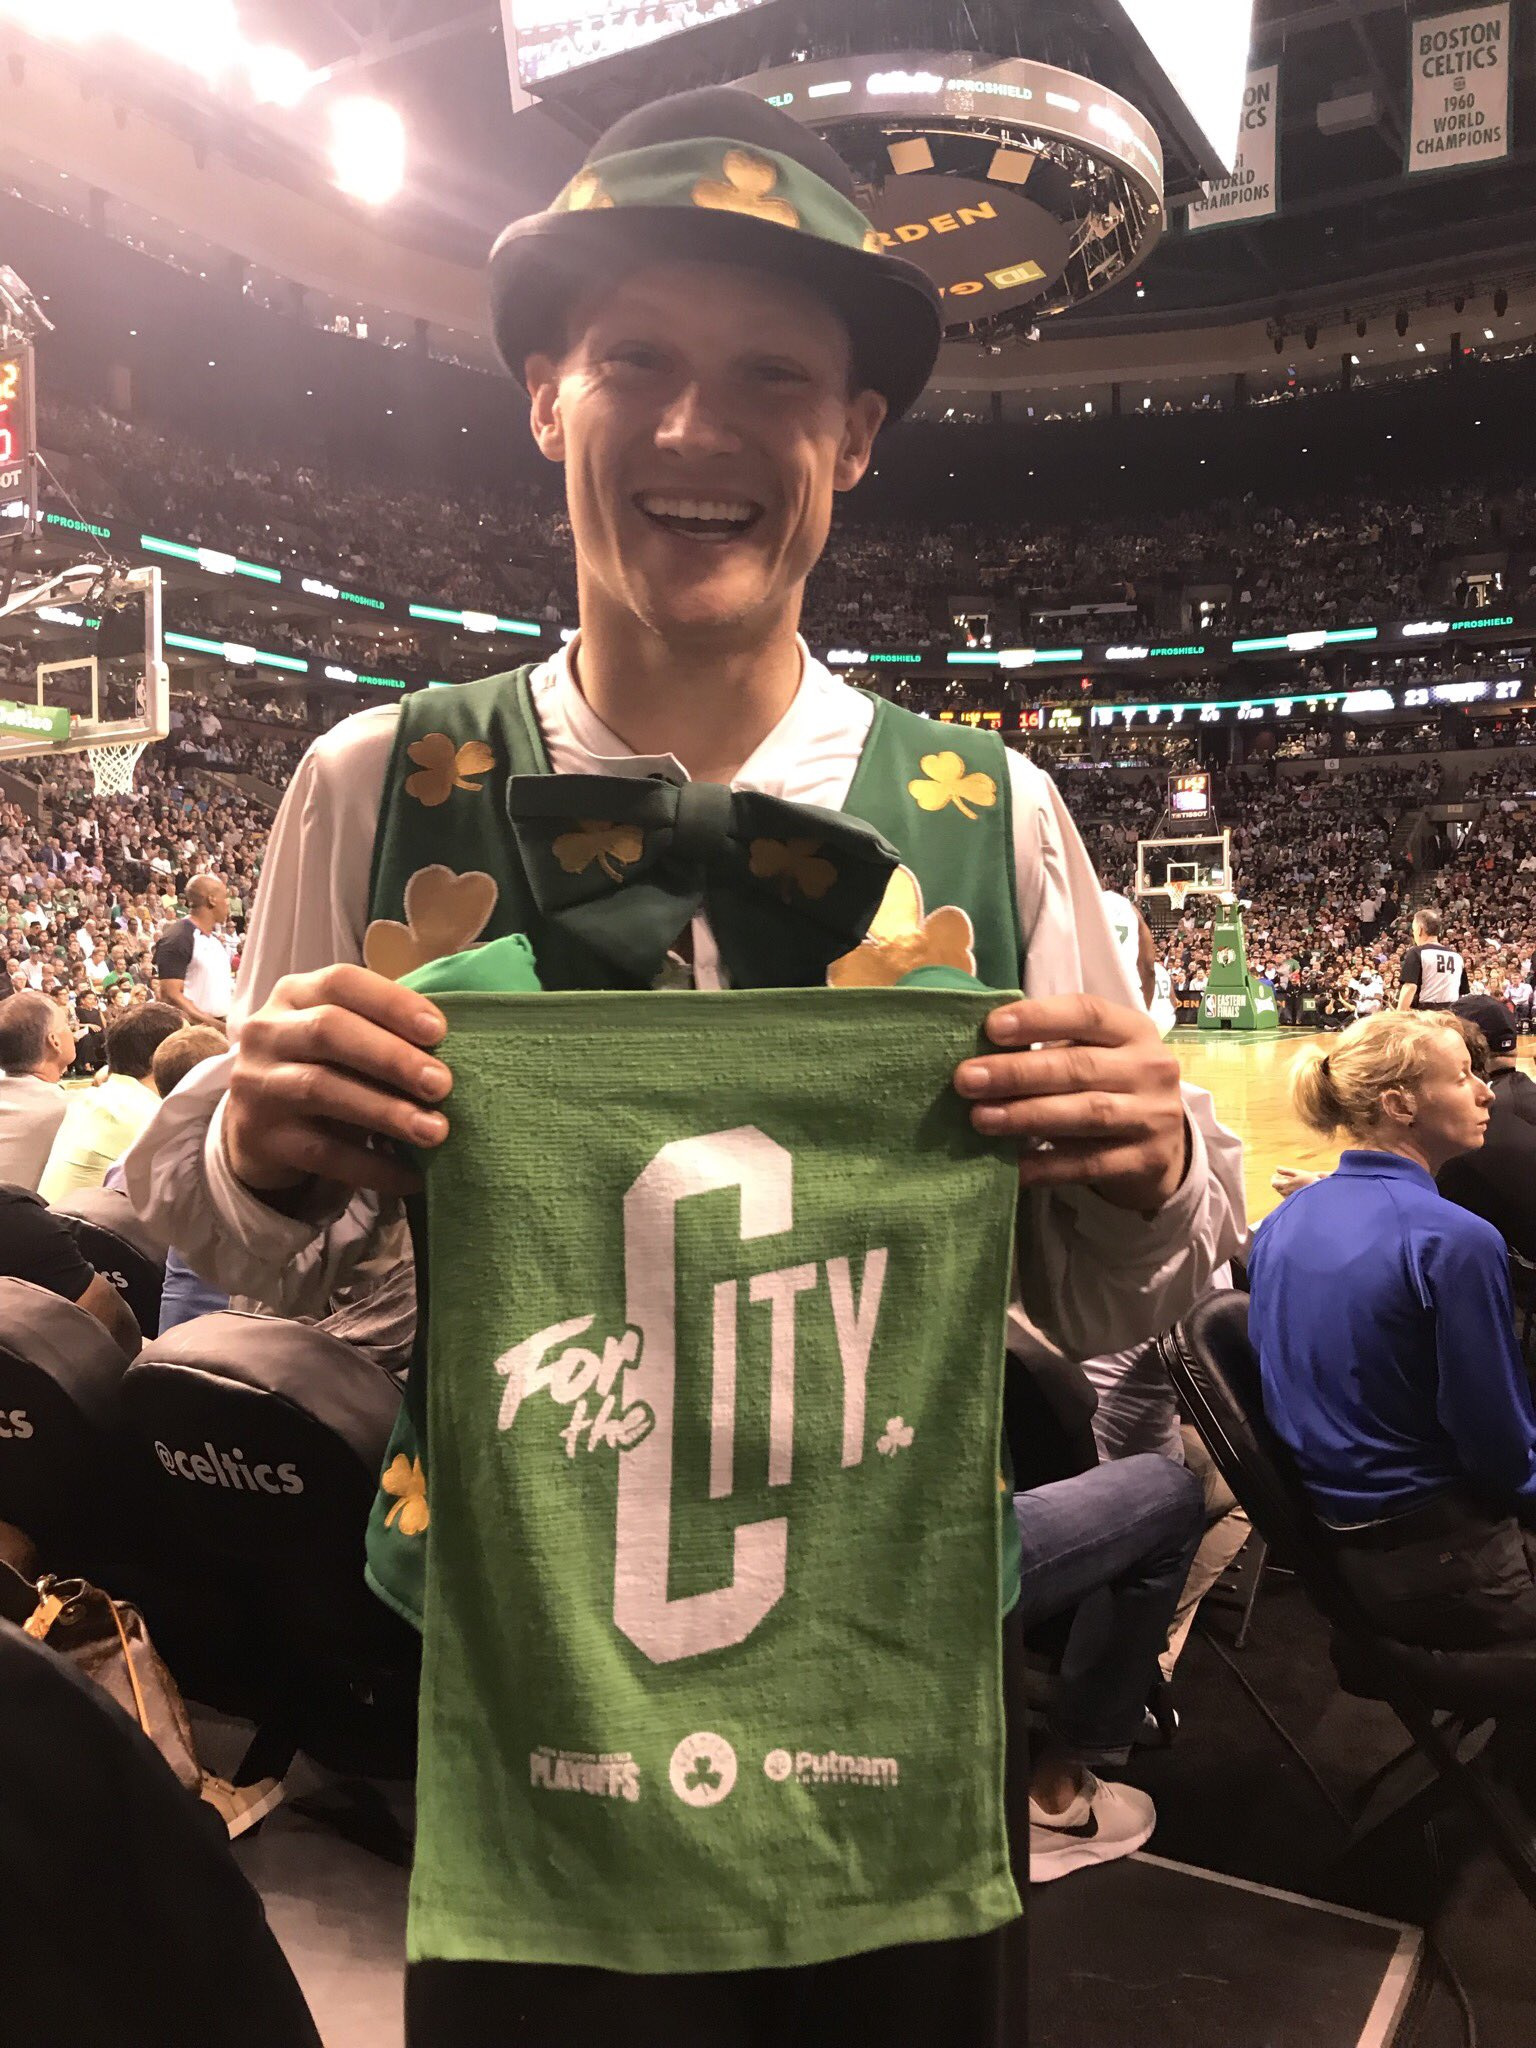 We've got some work to do in the second half.  Get your rally towels courtesy of @ArbellaIns & @PutnamToday ready! https://t.co/0cL0DviLFM